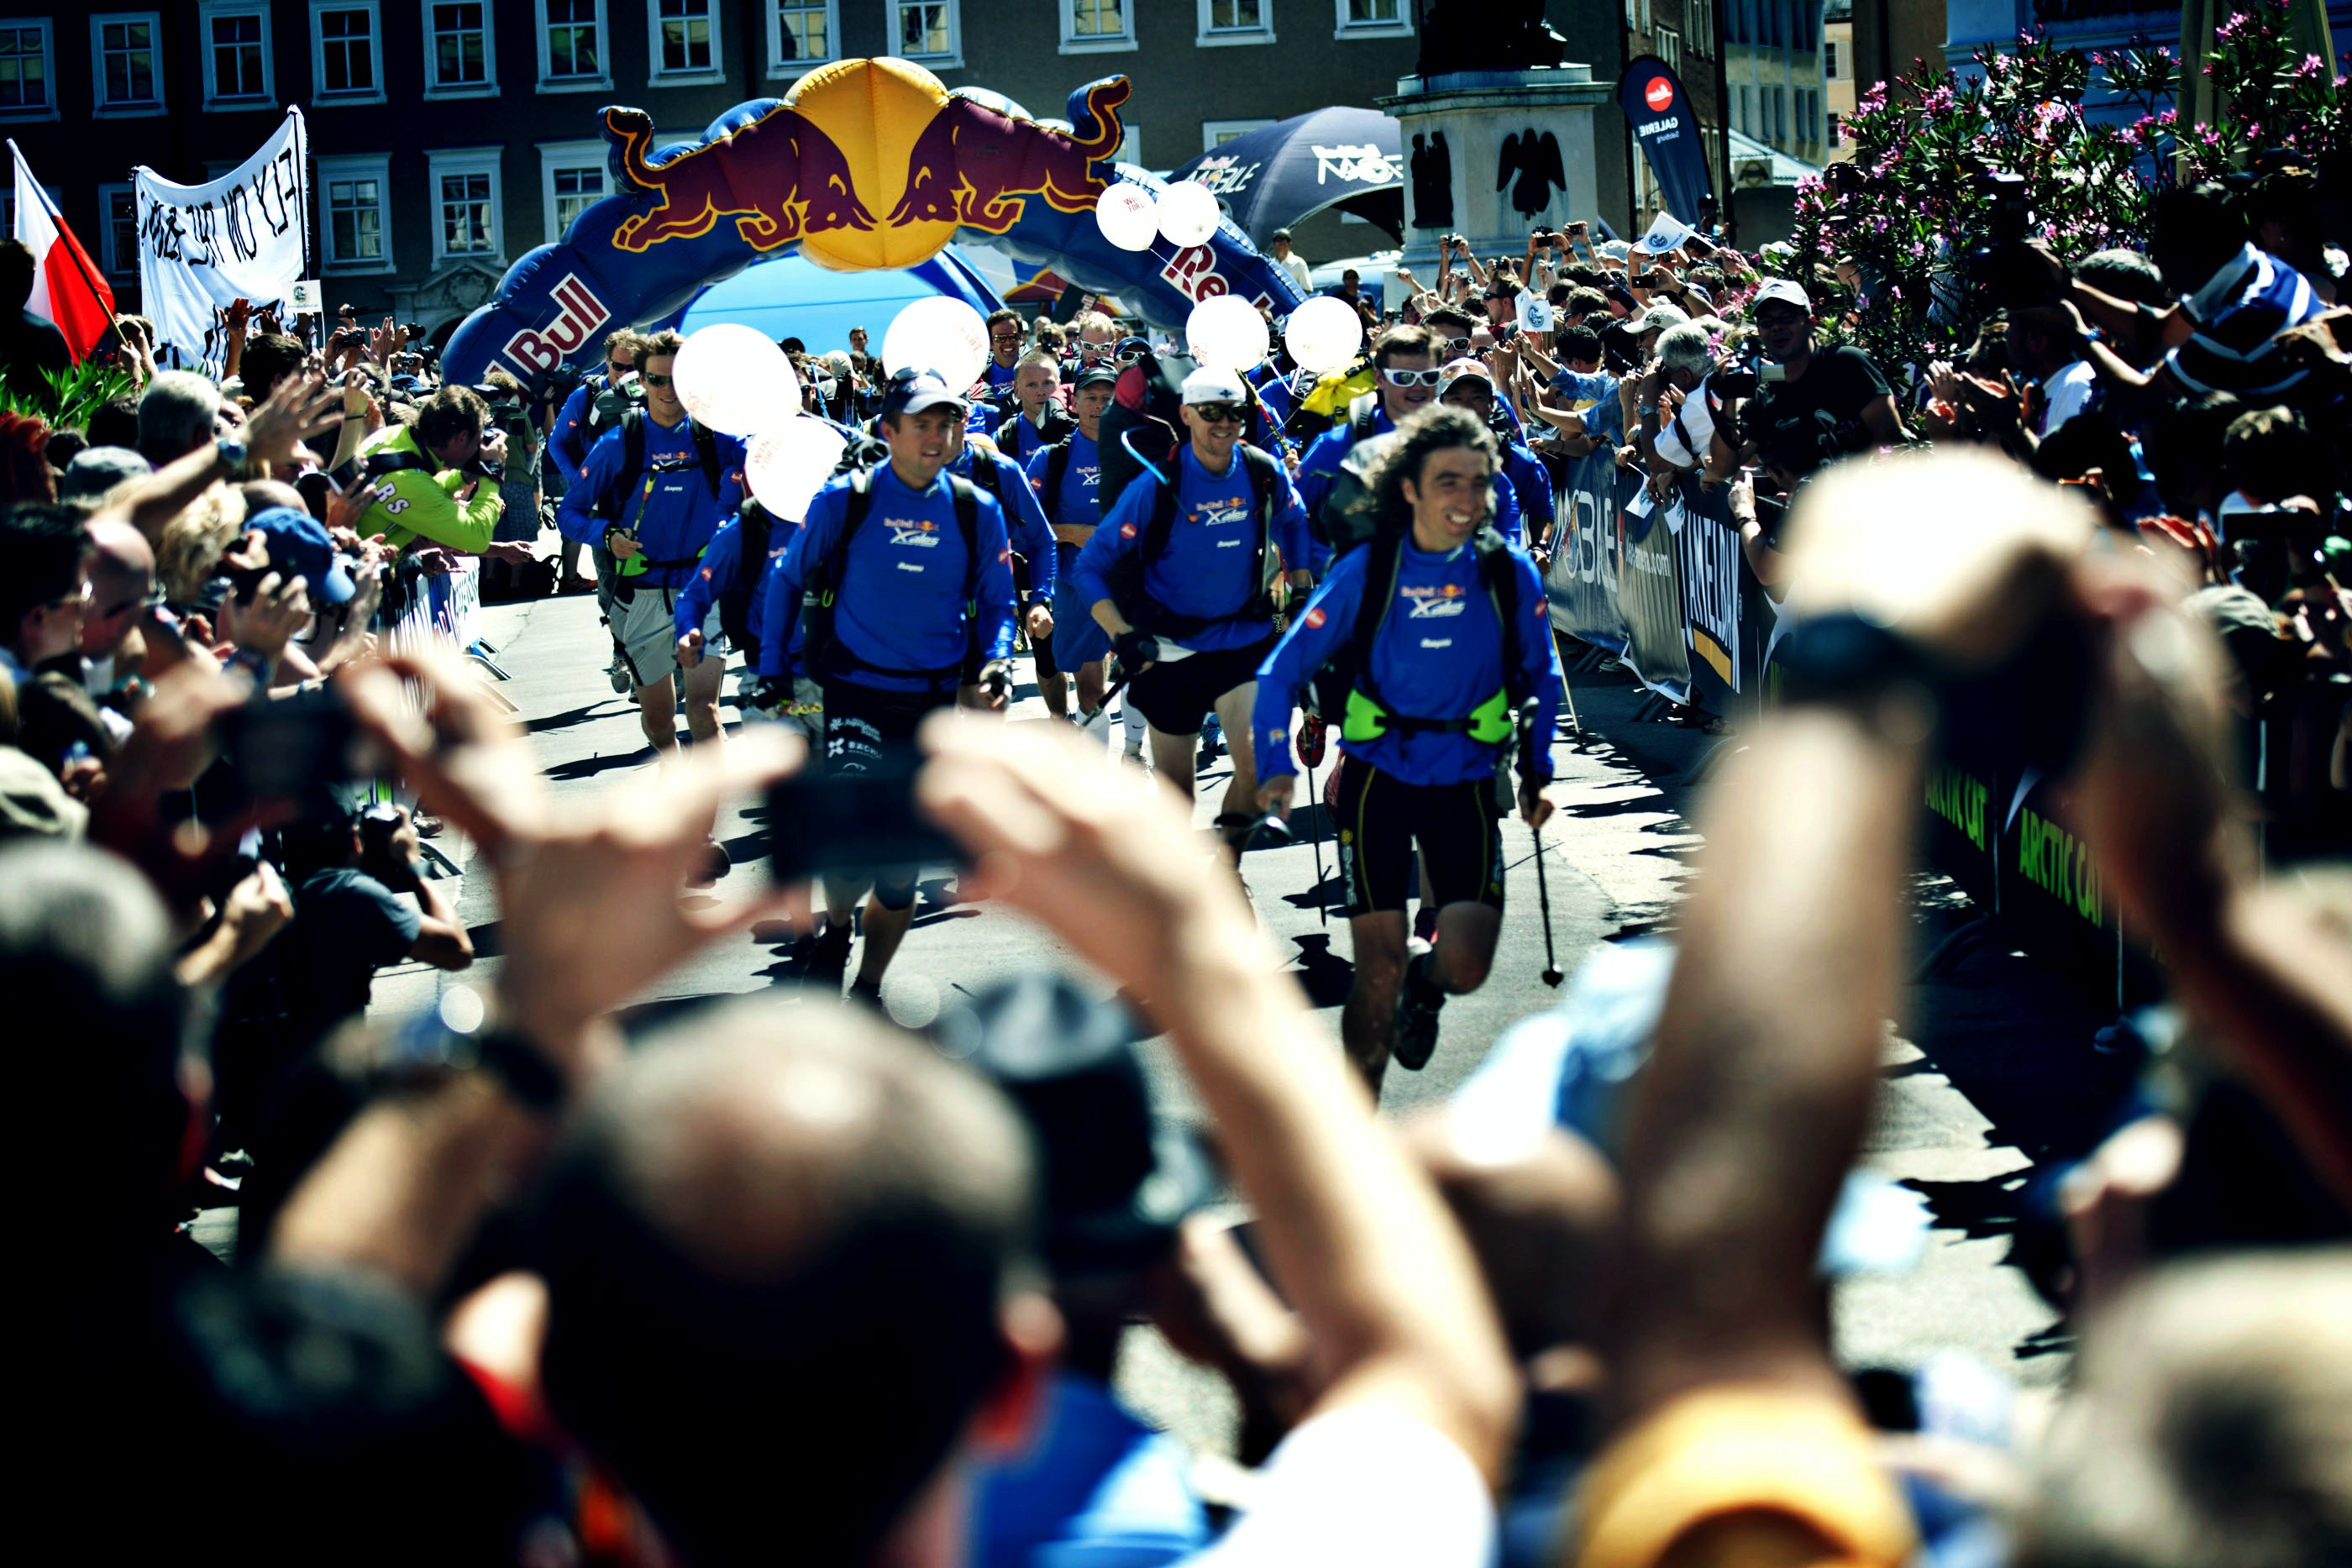 Red Bull X-Alps 2011 - Go! Go! Go! The race begins... Photo: Red Bull